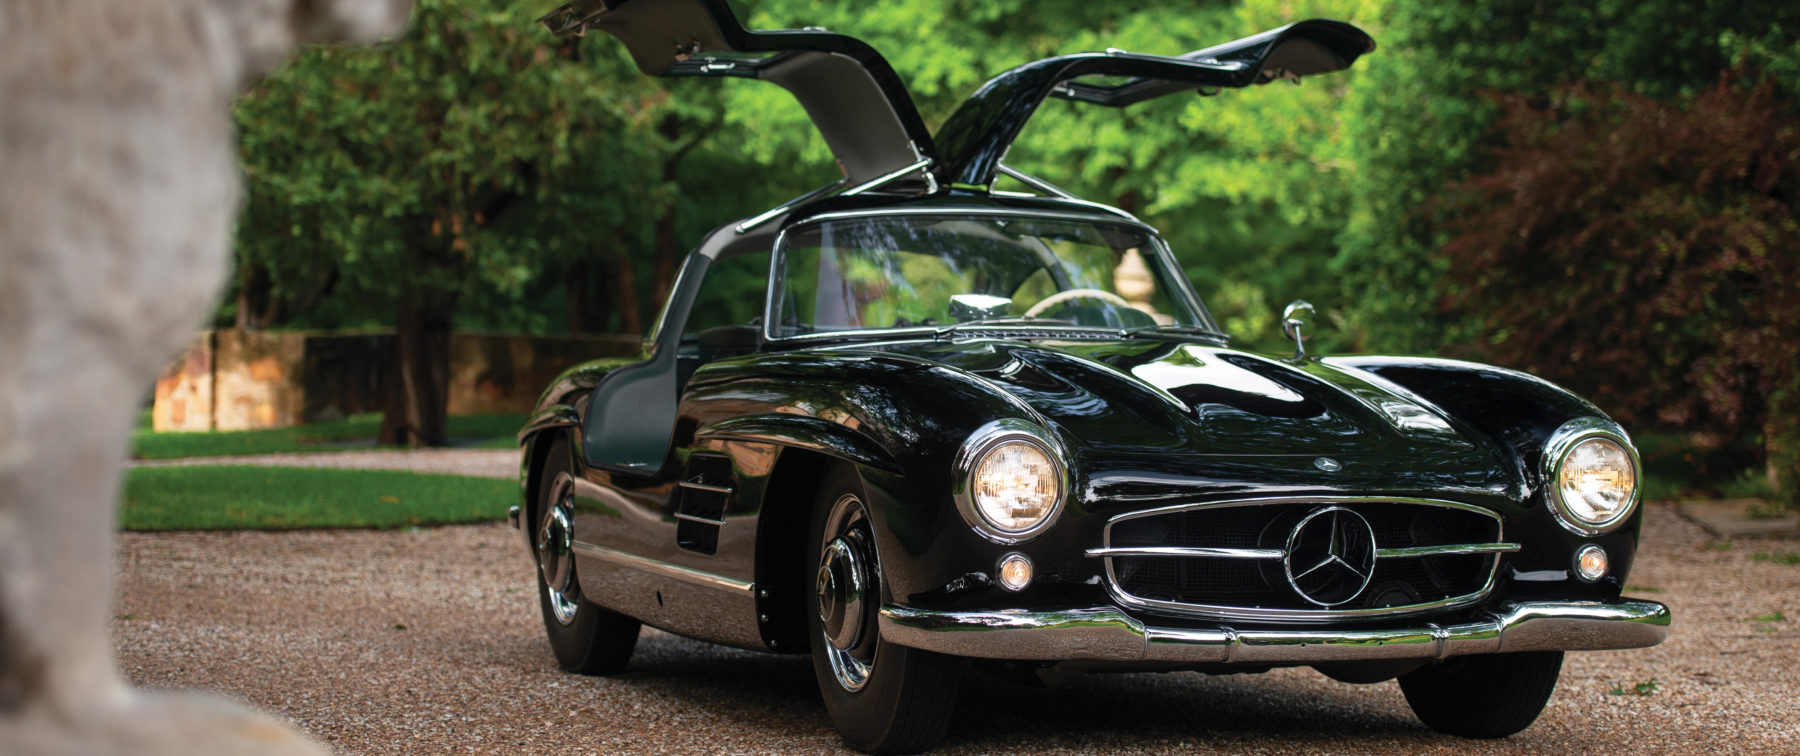 This 1954 gull-wing Mercedes-Benz is pure black magic ...